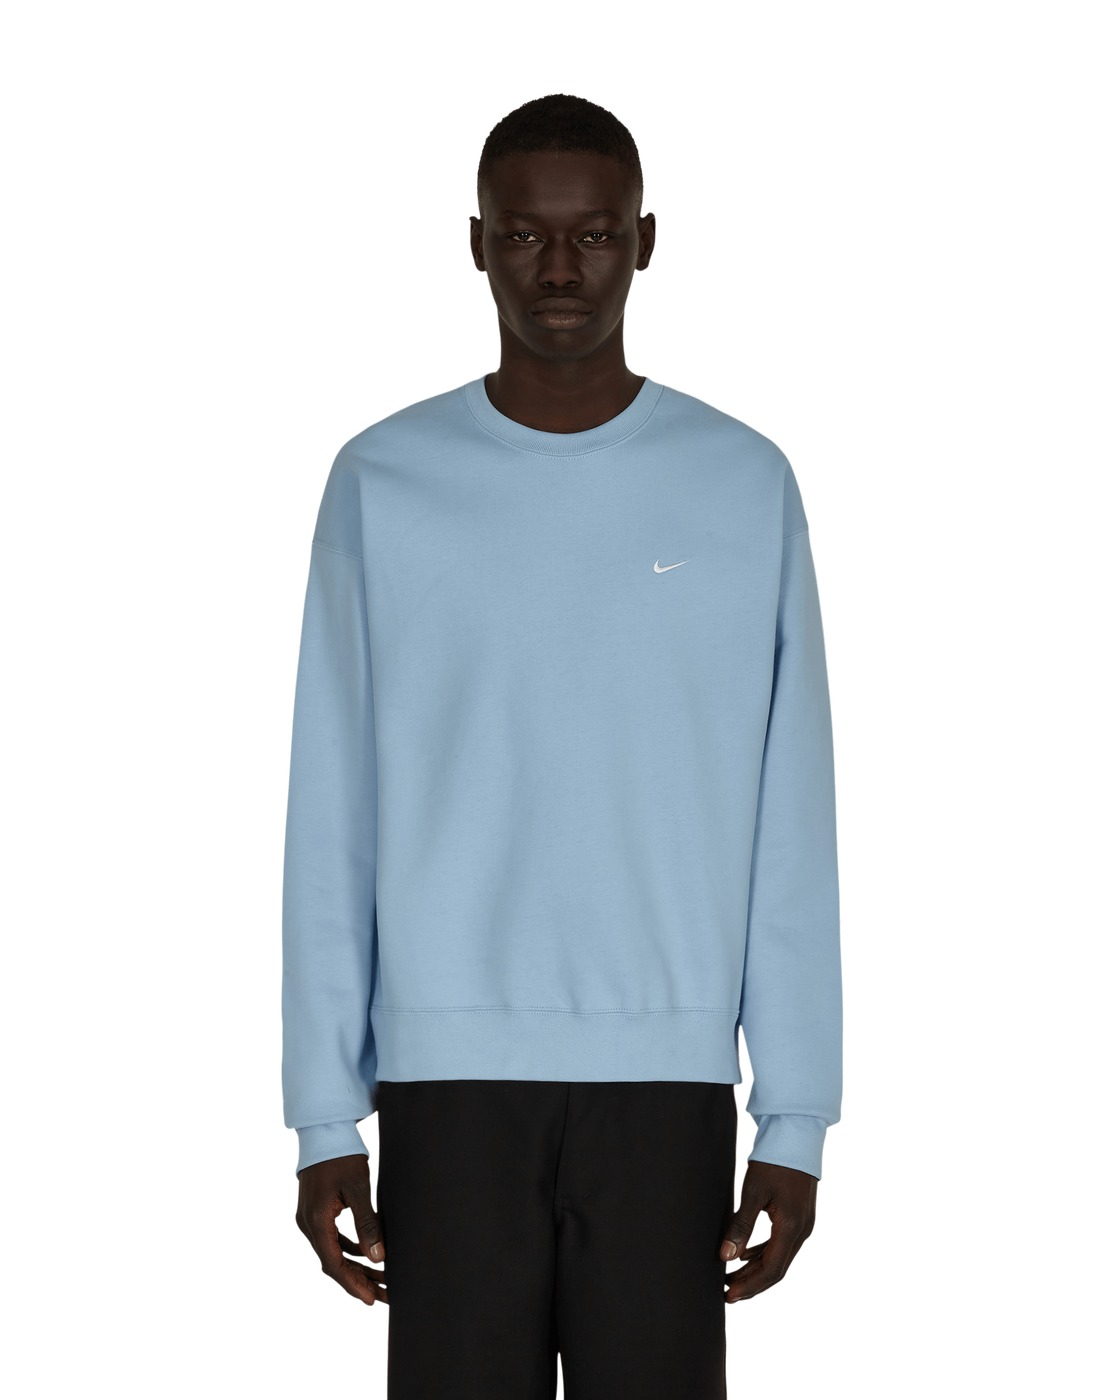 Photo: Nike Special Project Solo Swoosh Crewneck Sweatshirt Psychic Blue/White